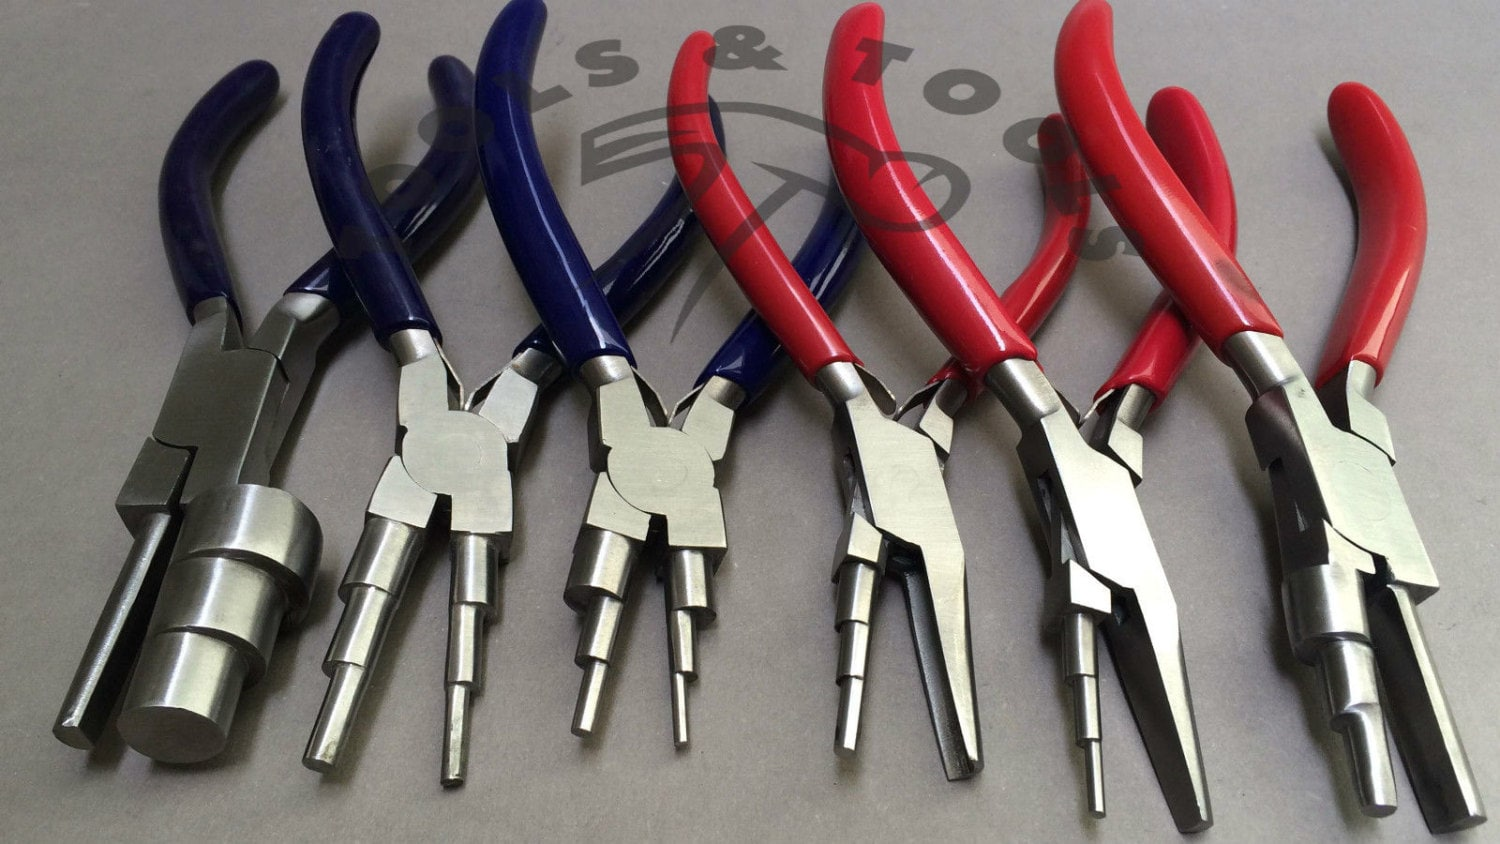 6 in 1 and 3 Step Wrap N Tap Pliers Jewelry Wire Bail Making Tools ...